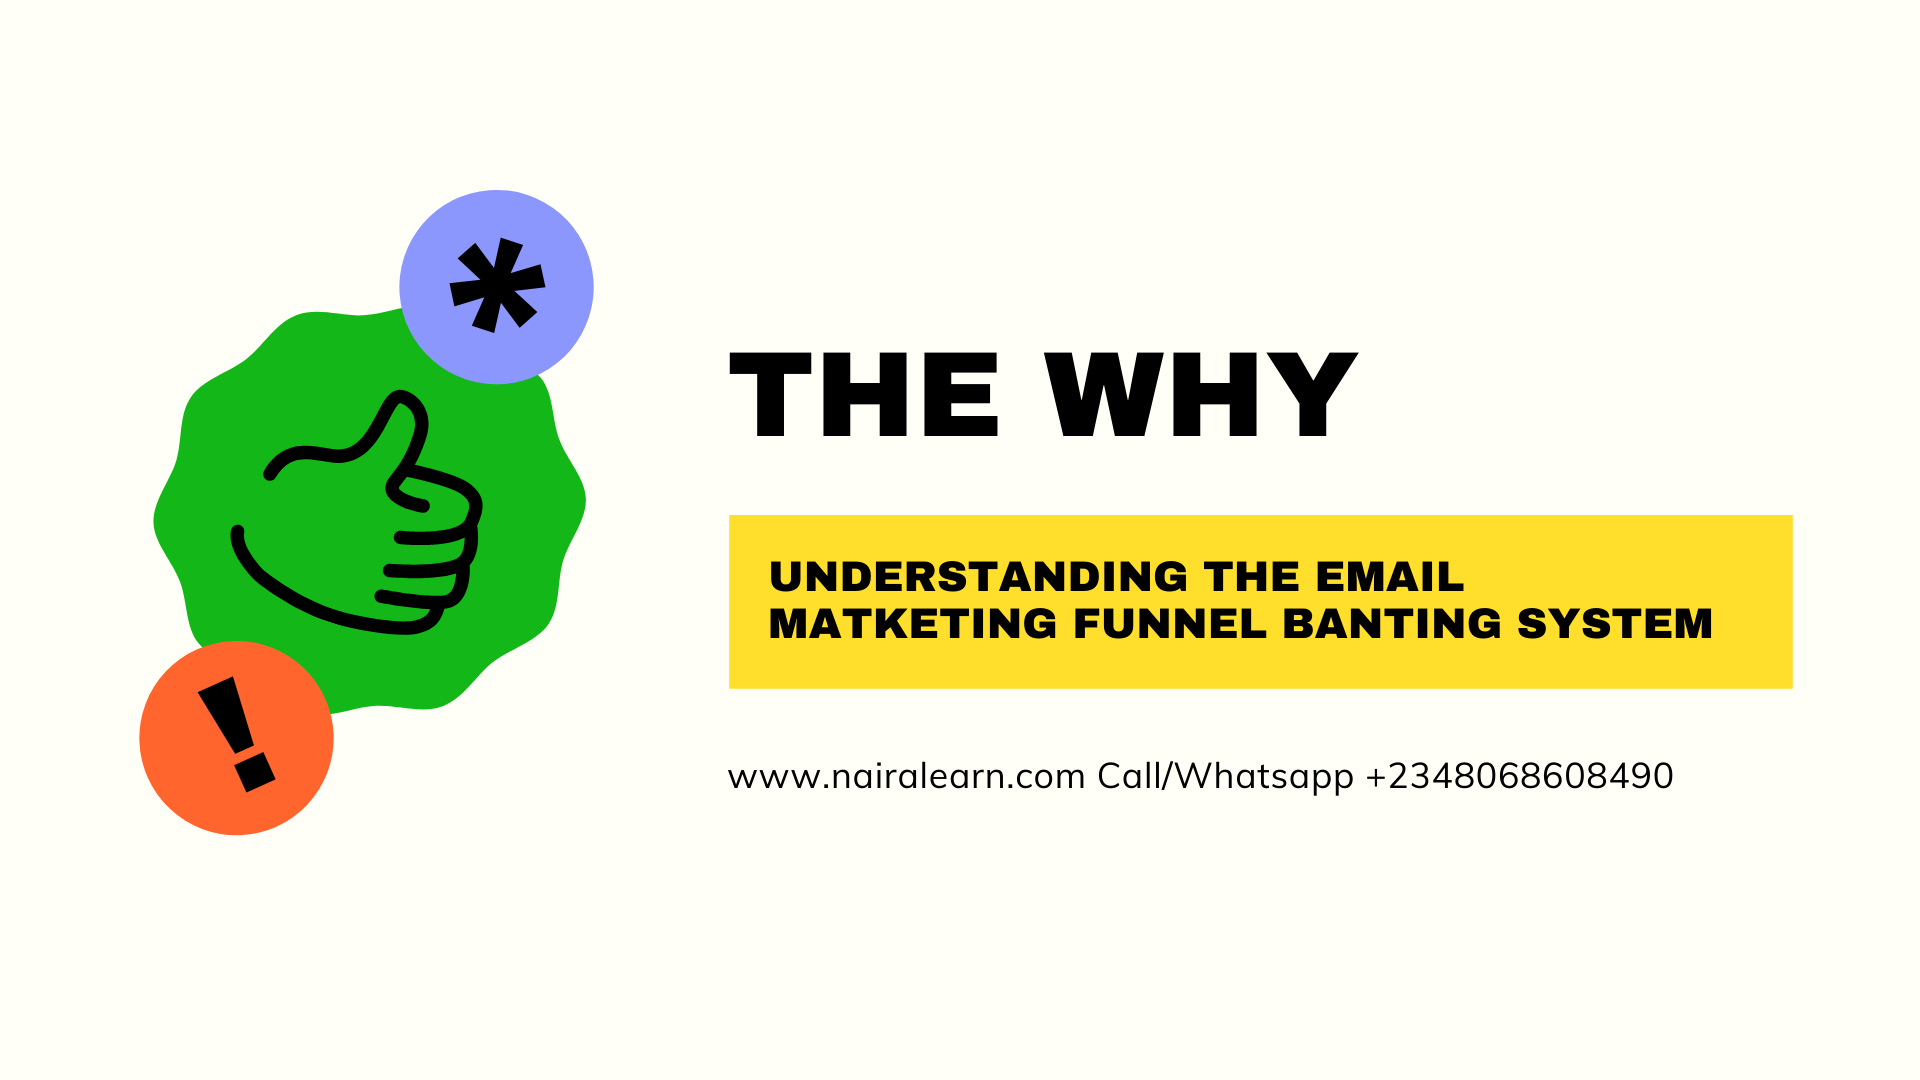 Understanding-The-Email-Marketing-Funnel-Banting-System3